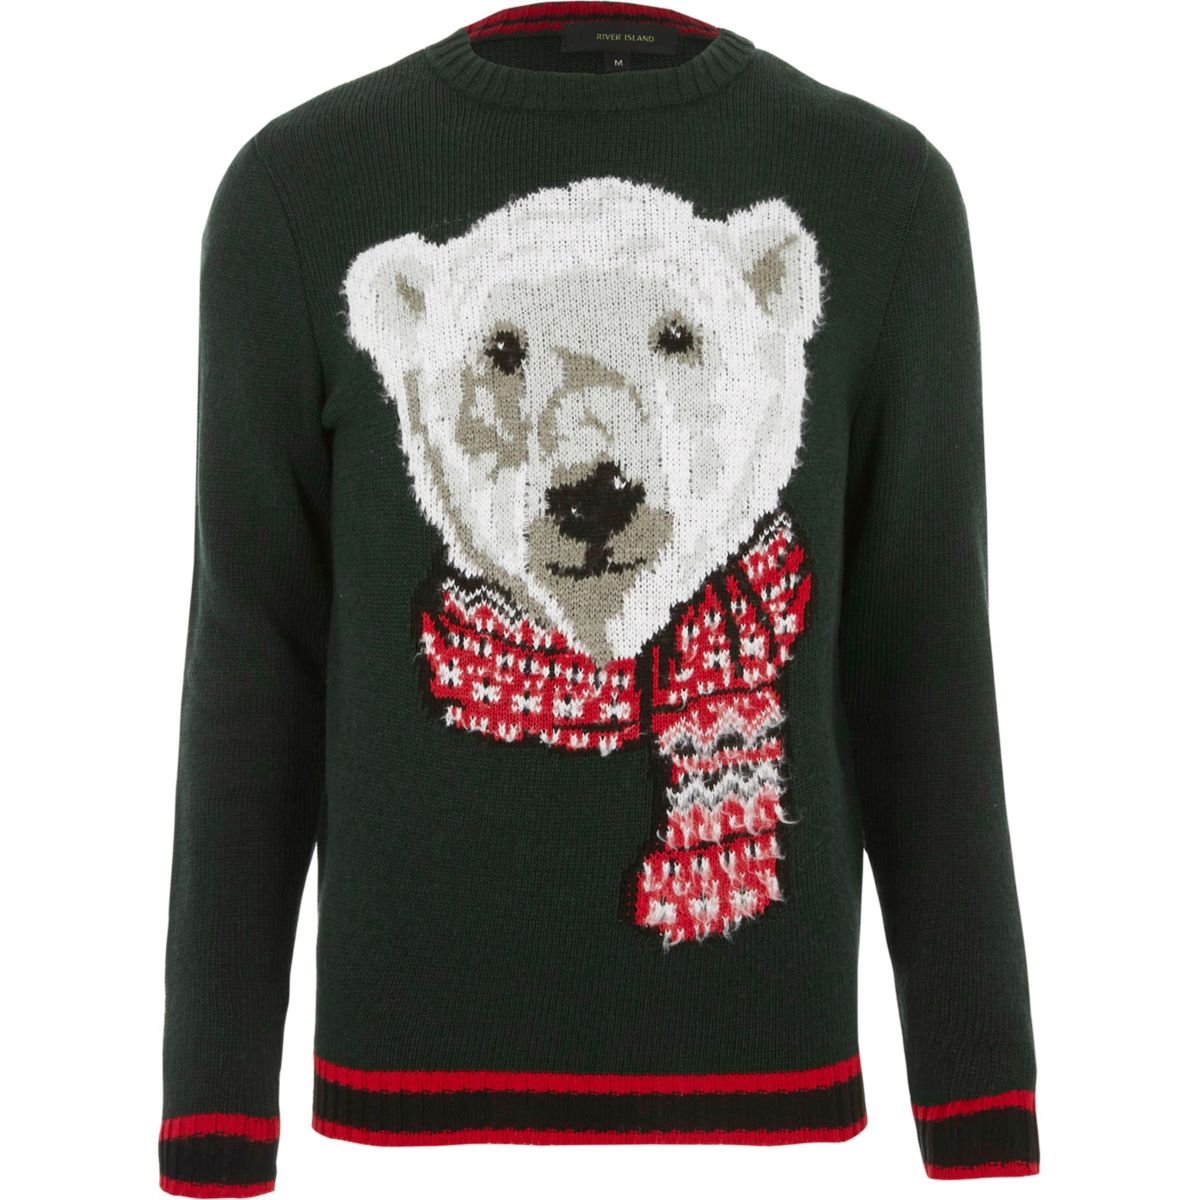 Dark green polar bear knit Christmas sweater